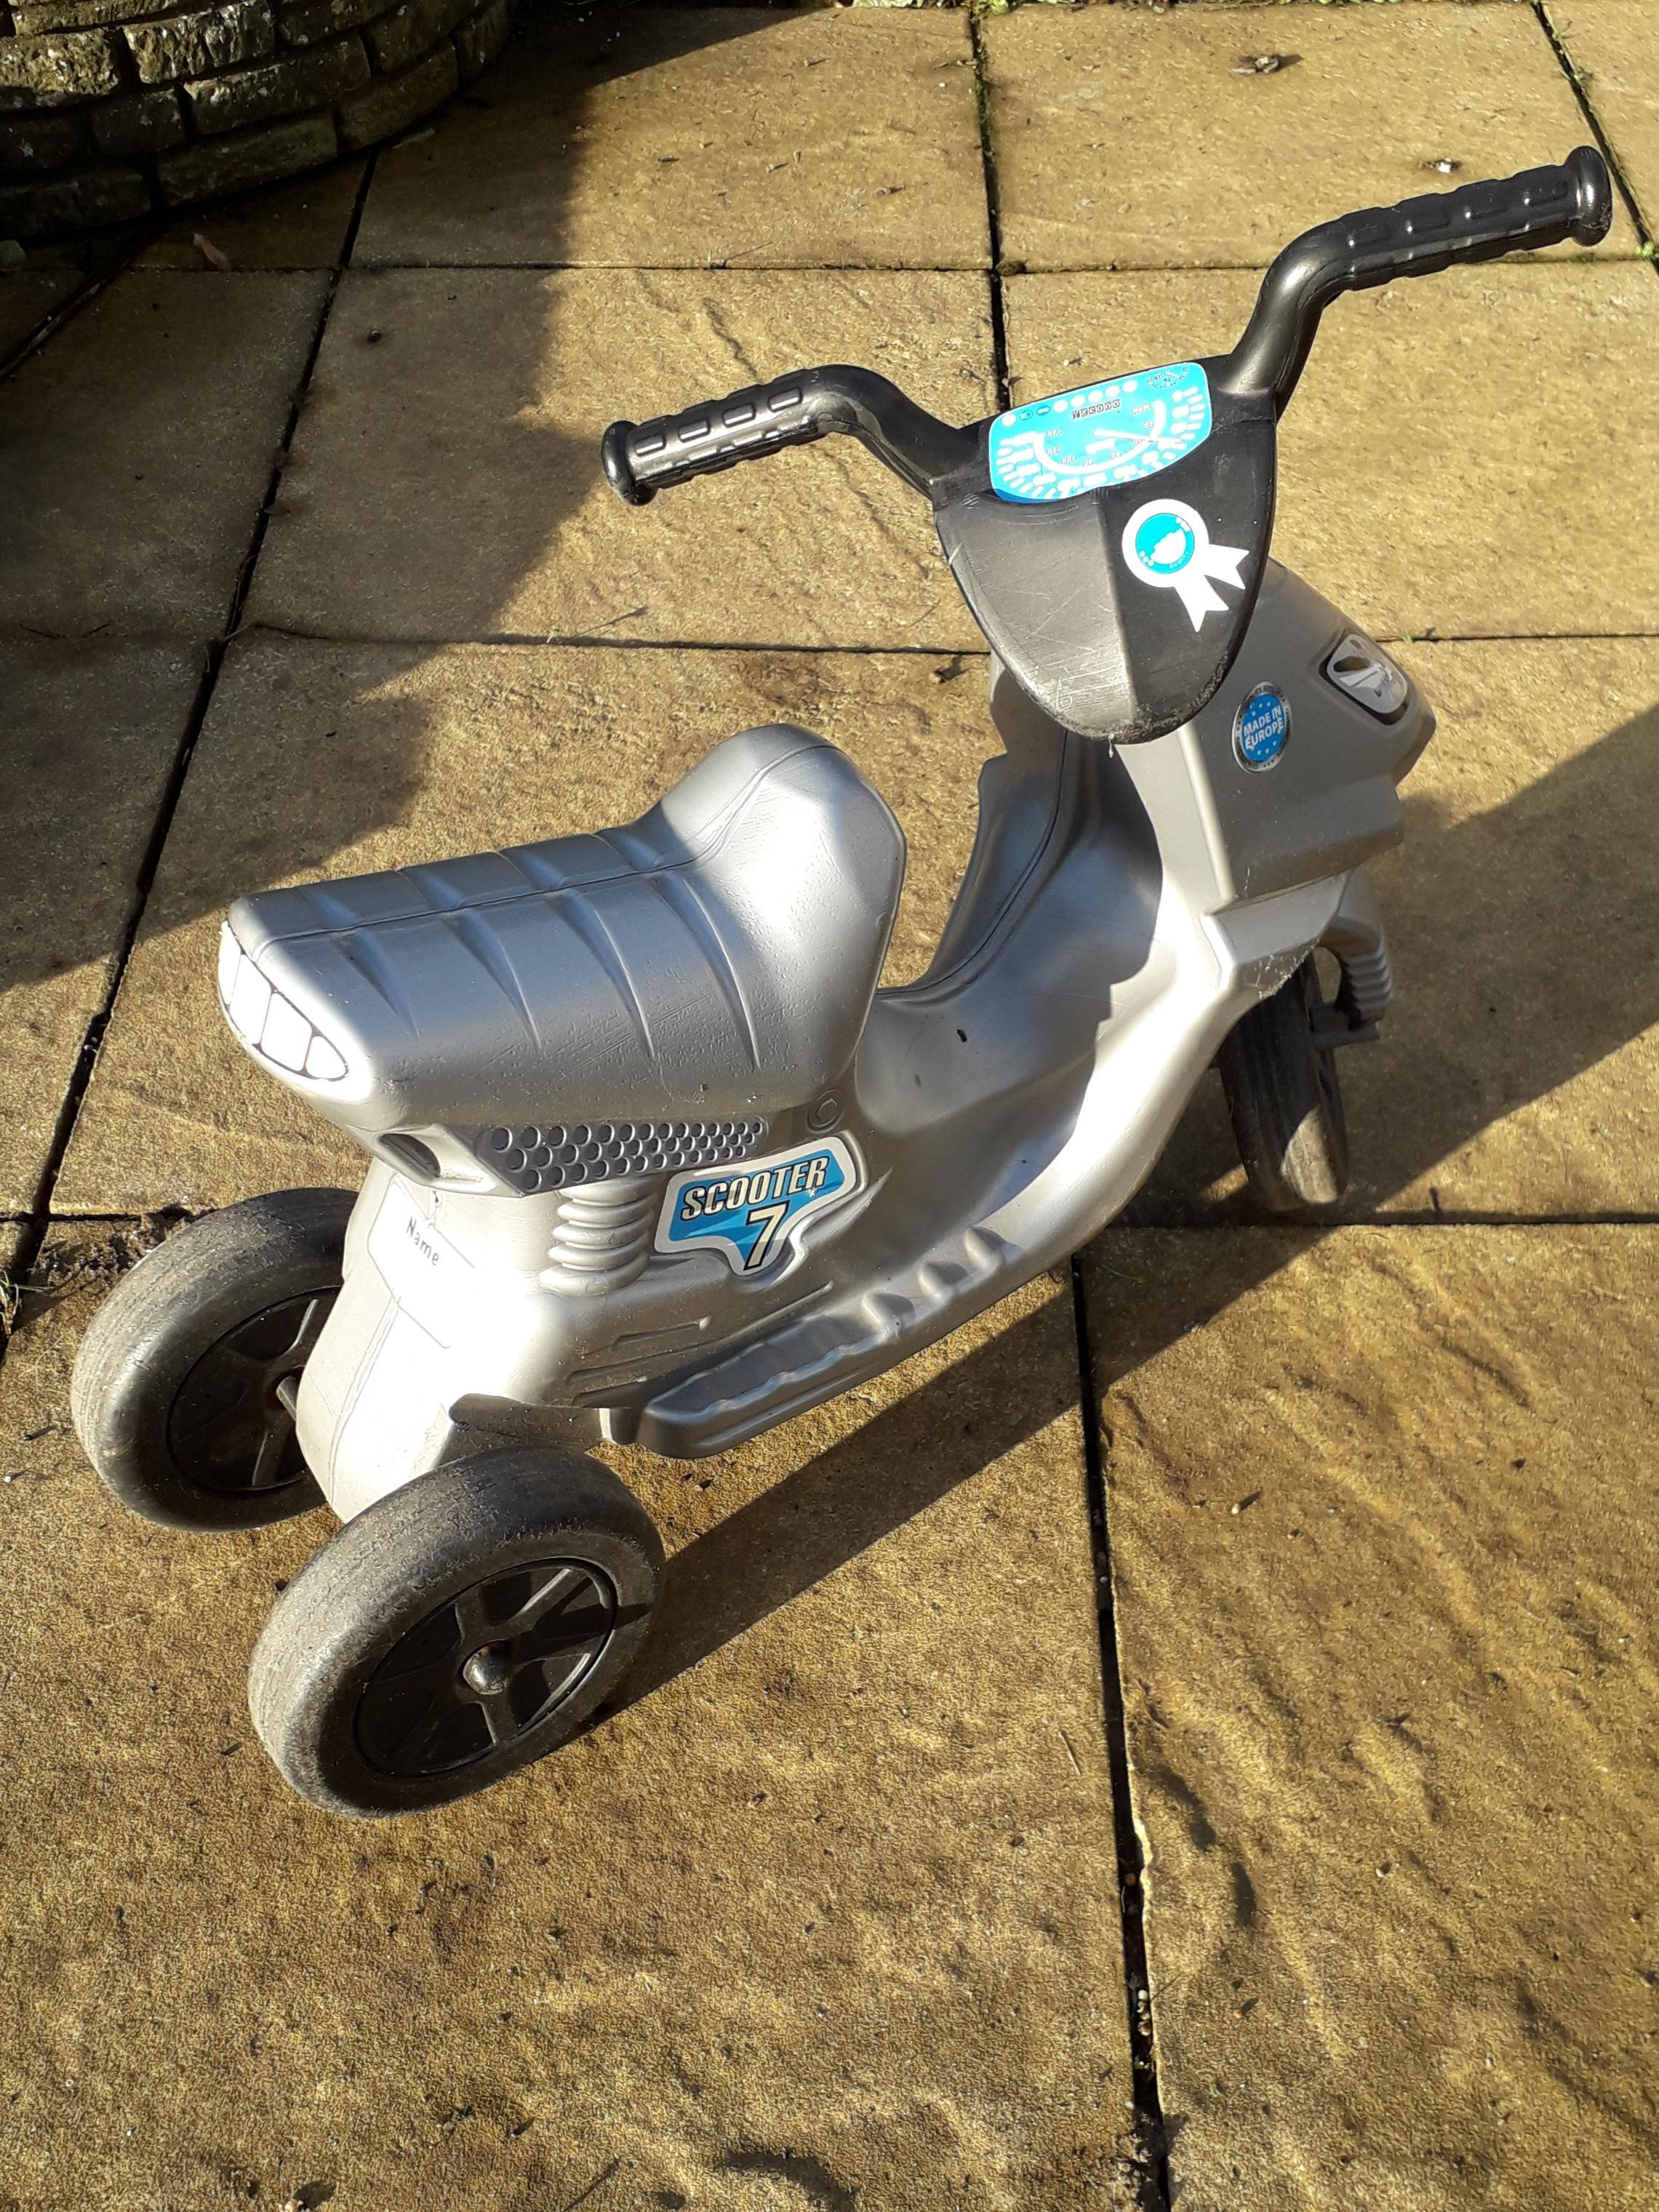 Childs sit on scooter